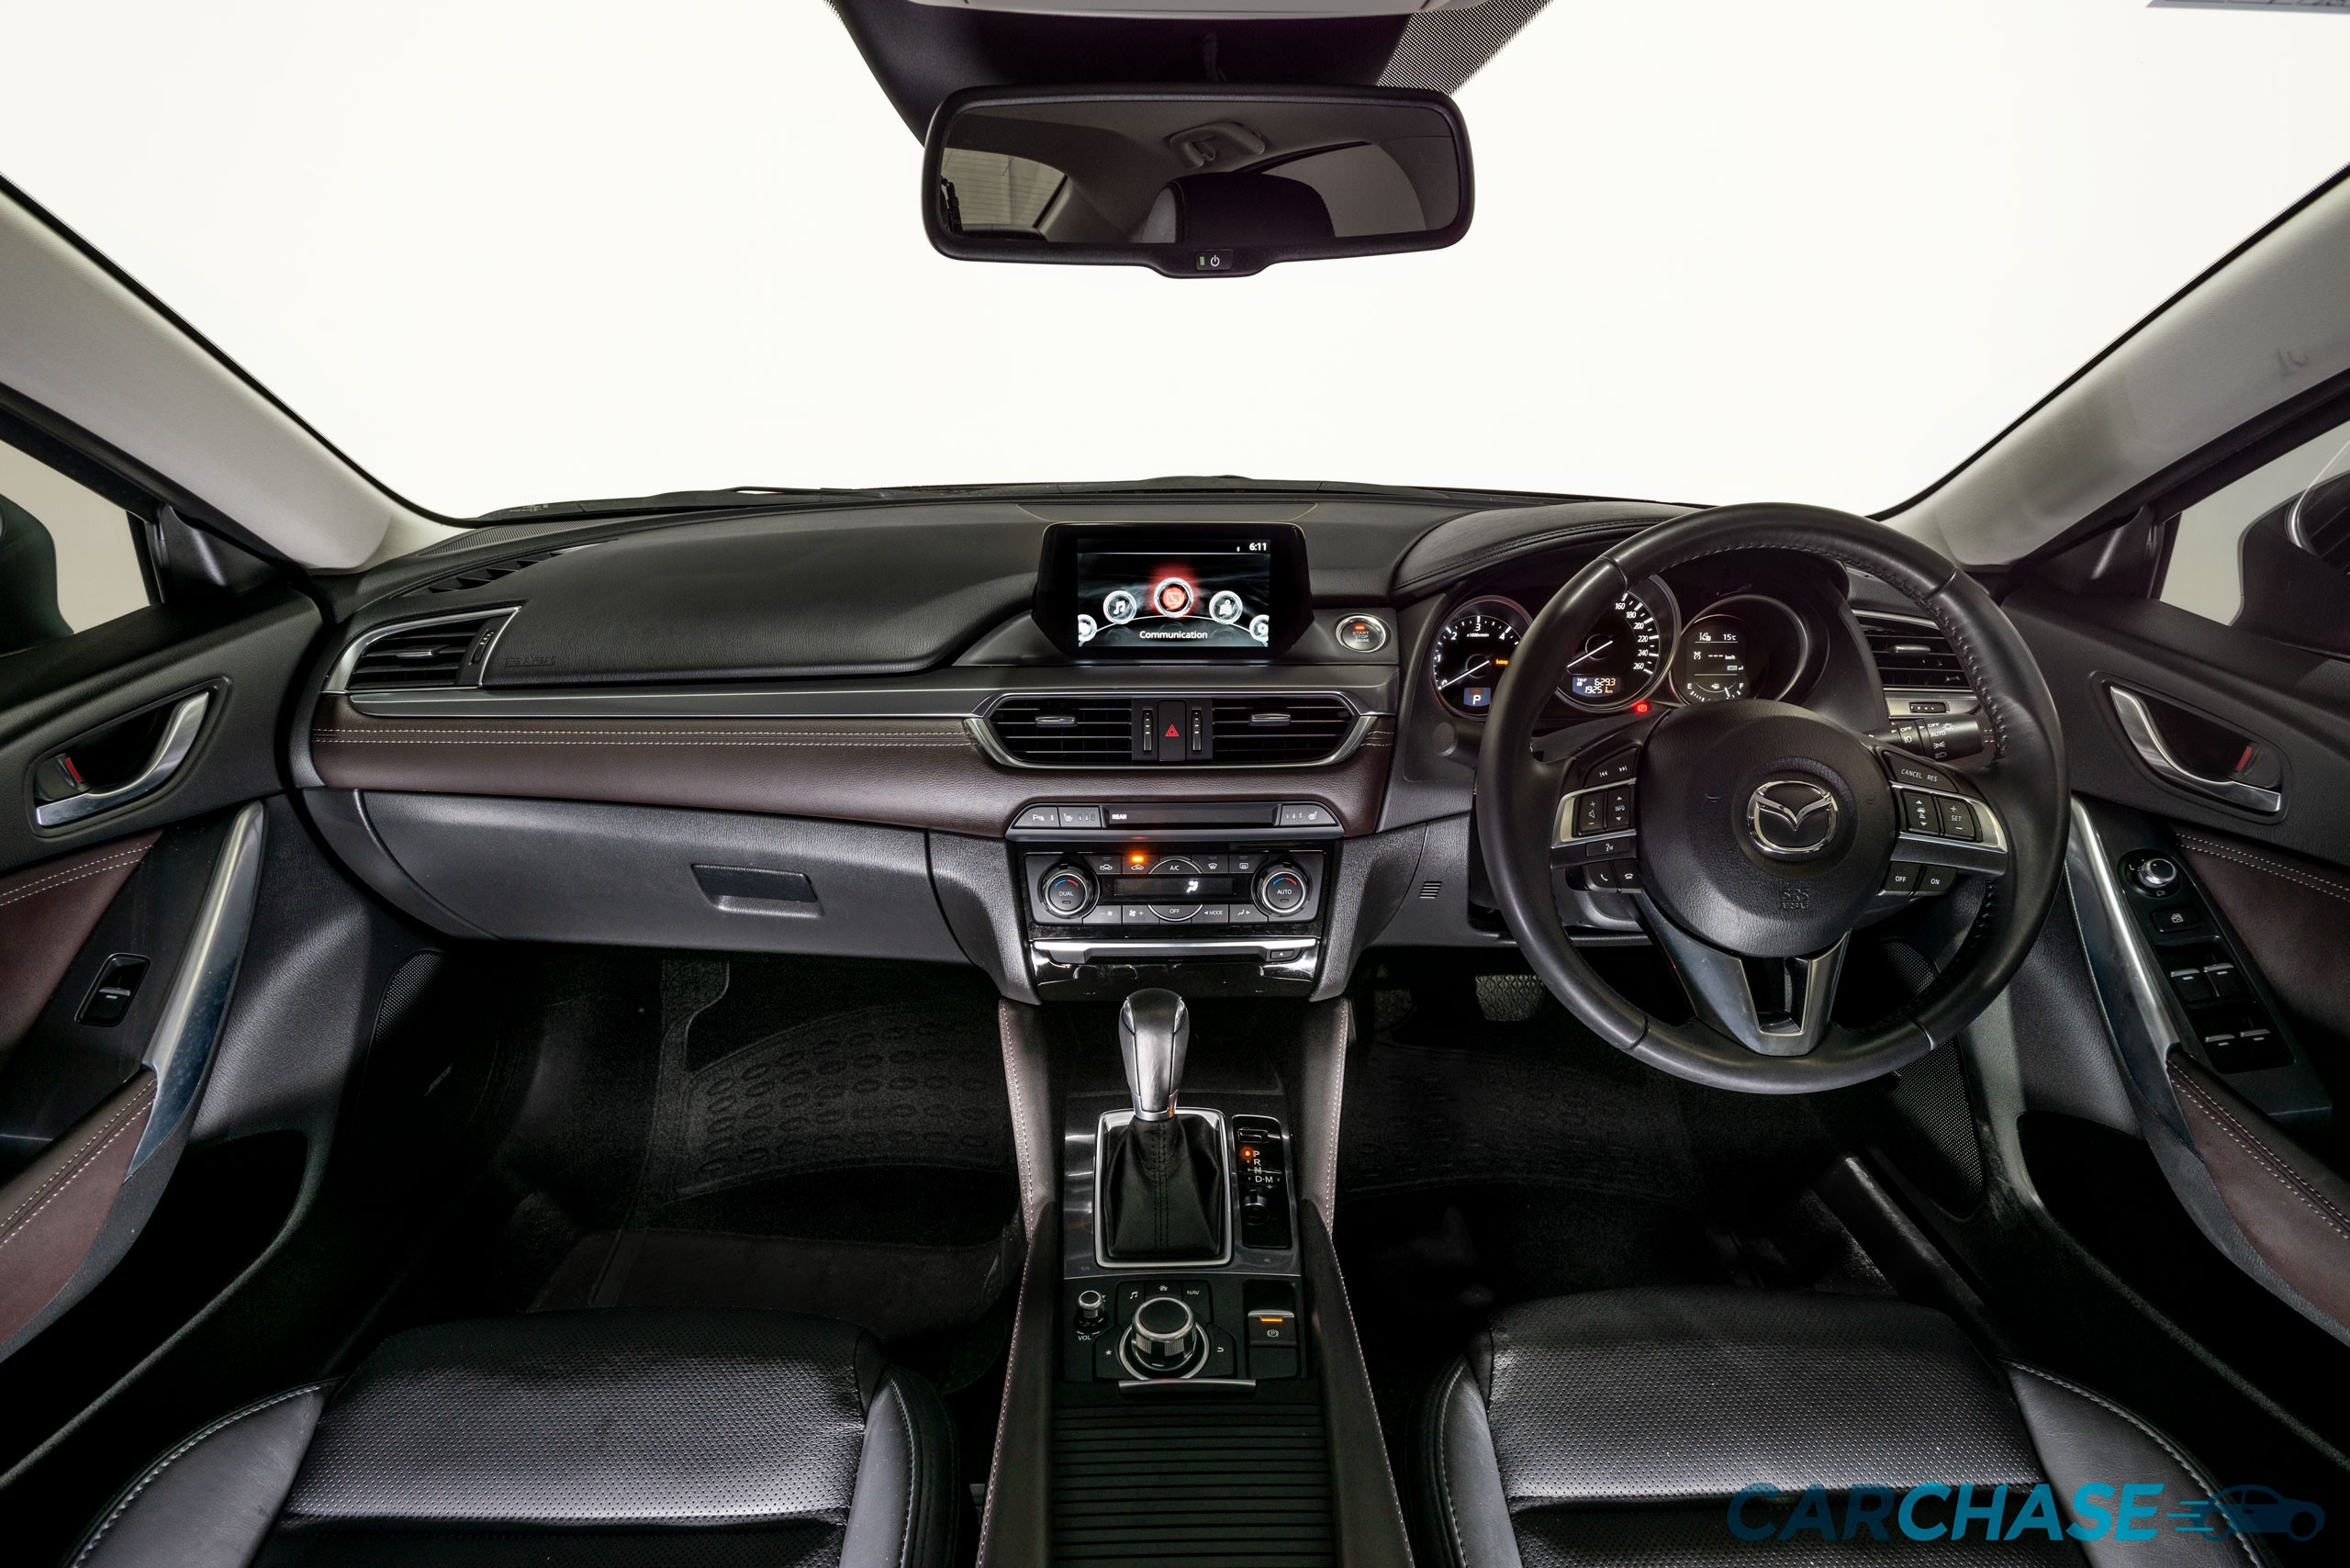 Image of dashboard profile of 2015 Mazda 6 Atenza